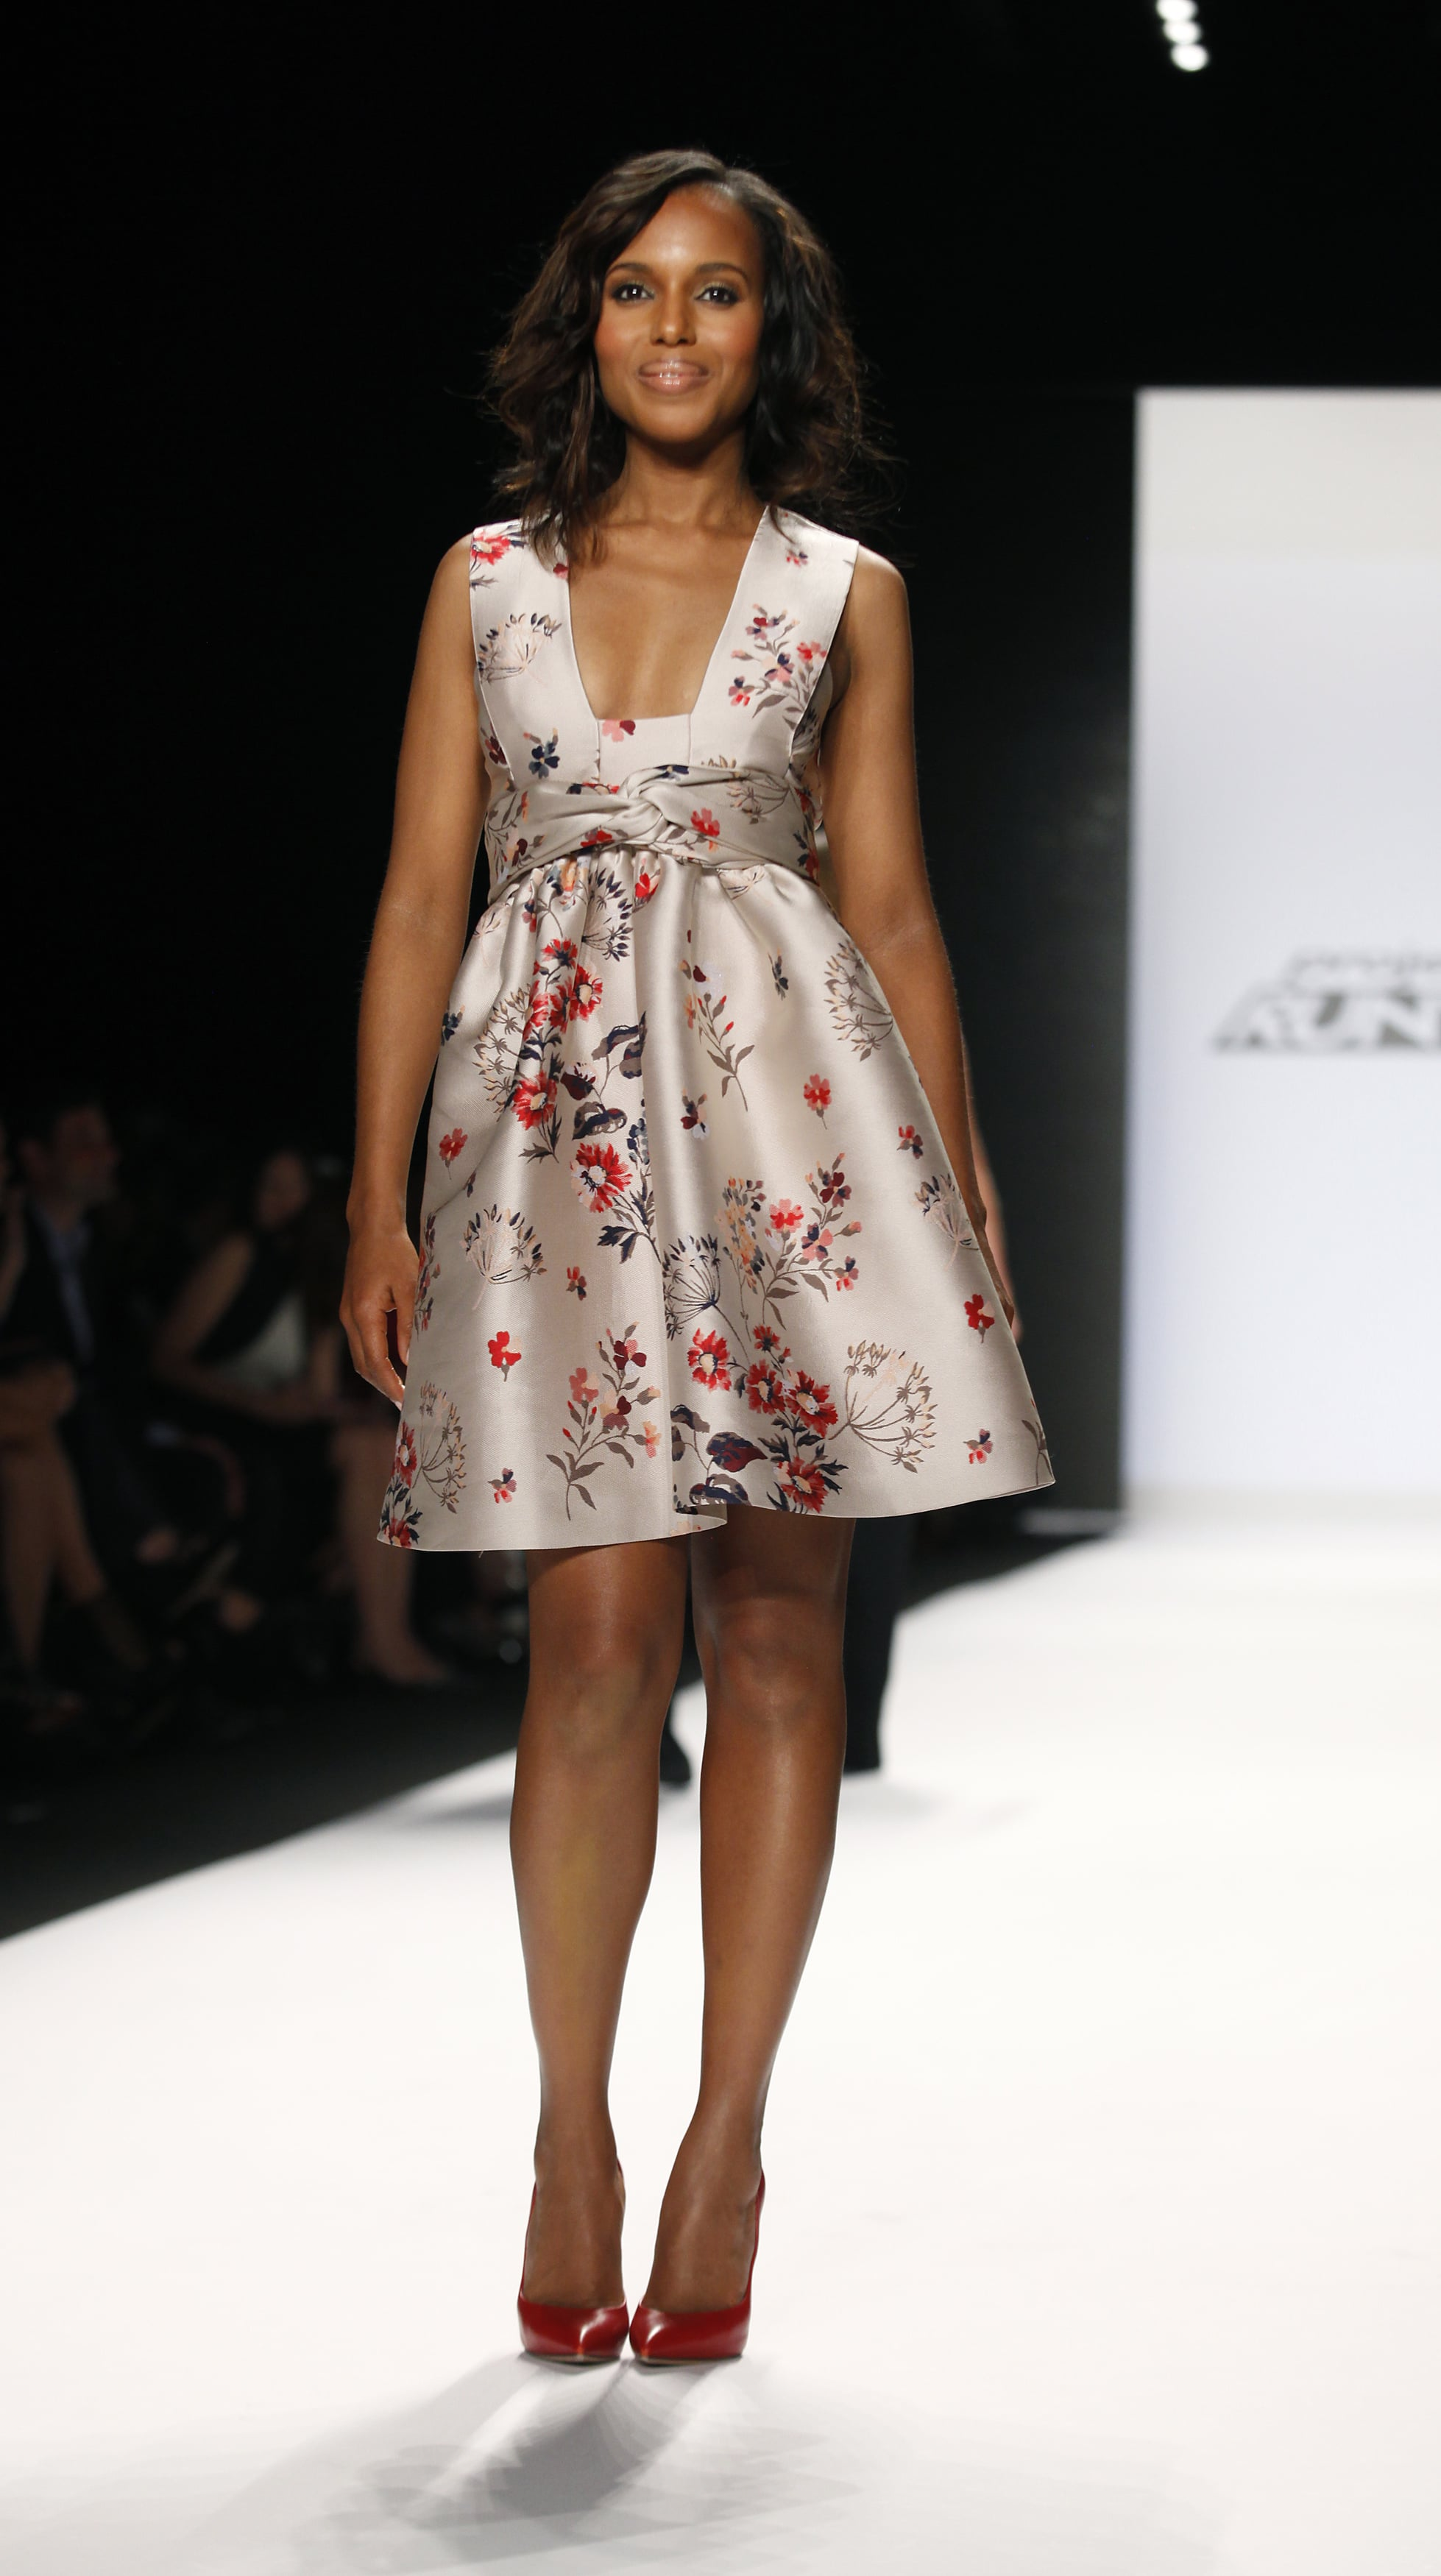 During New York Fashion Week, Washington walked down the catwalk at the Project Runway fashion show in a floral printed silk dress.